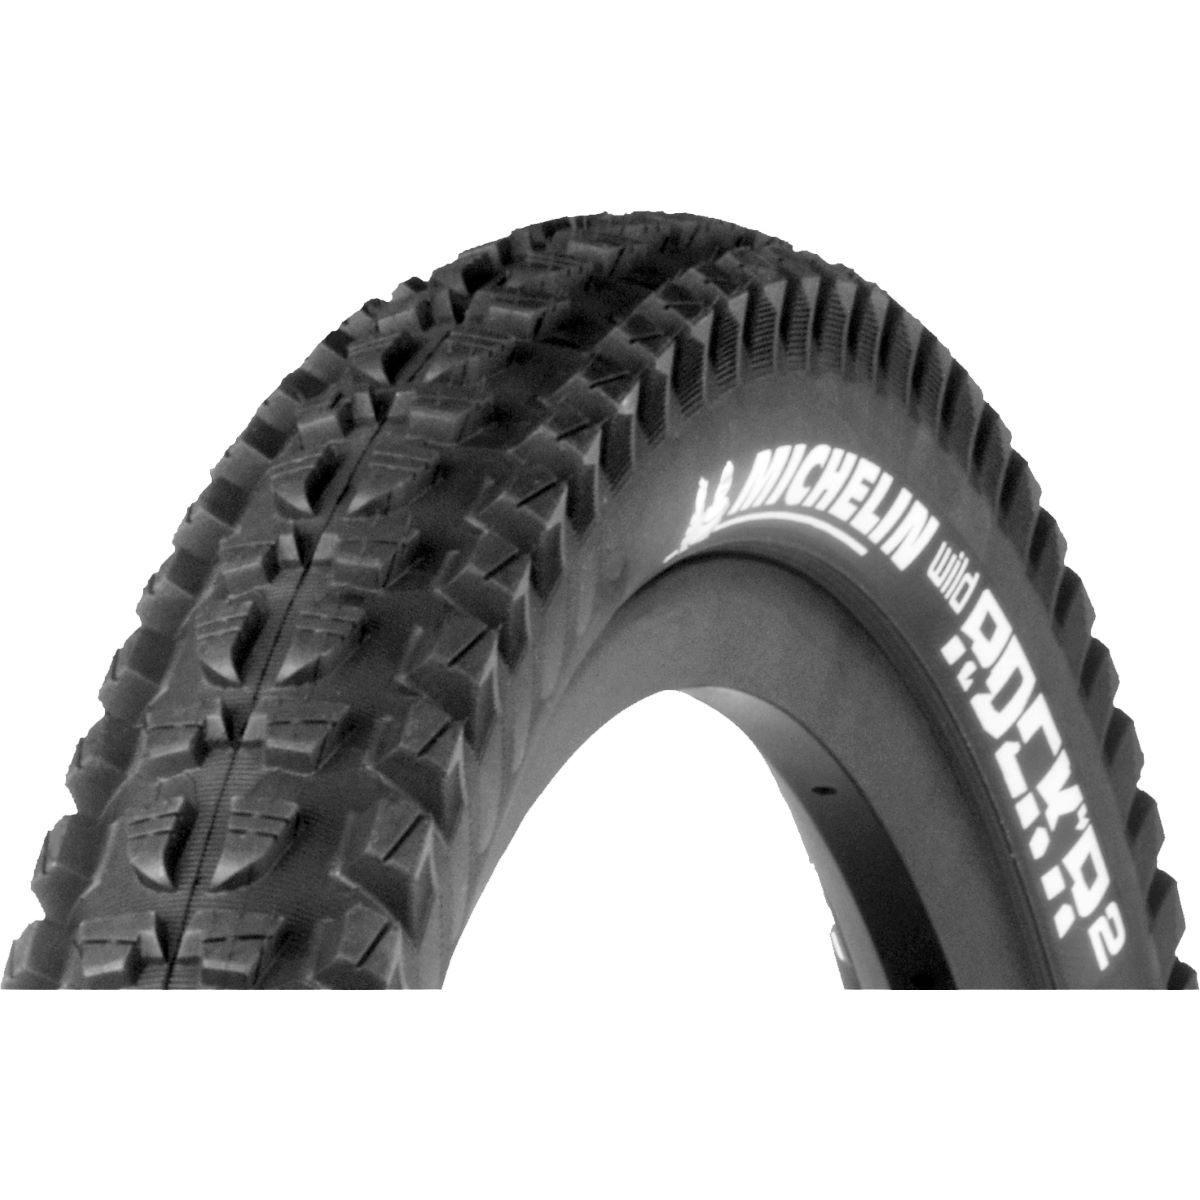 Pneu Michelin Wild Rock''r2 Advanced Reinforced Gum-X - 26 x 2.35 26'